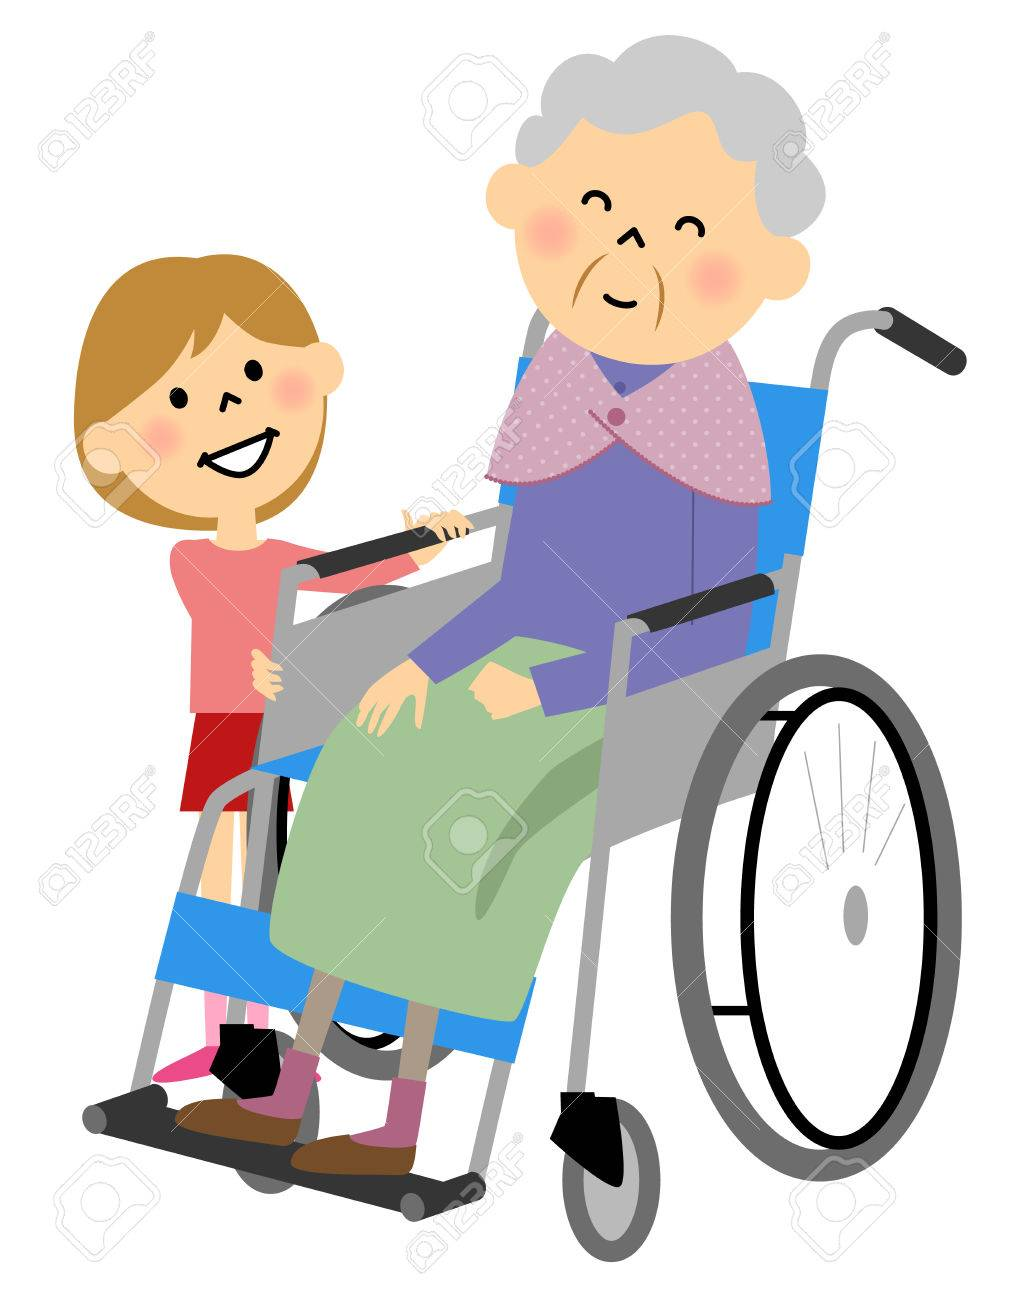 The elderly to sit in a wheelchair, nursing care.